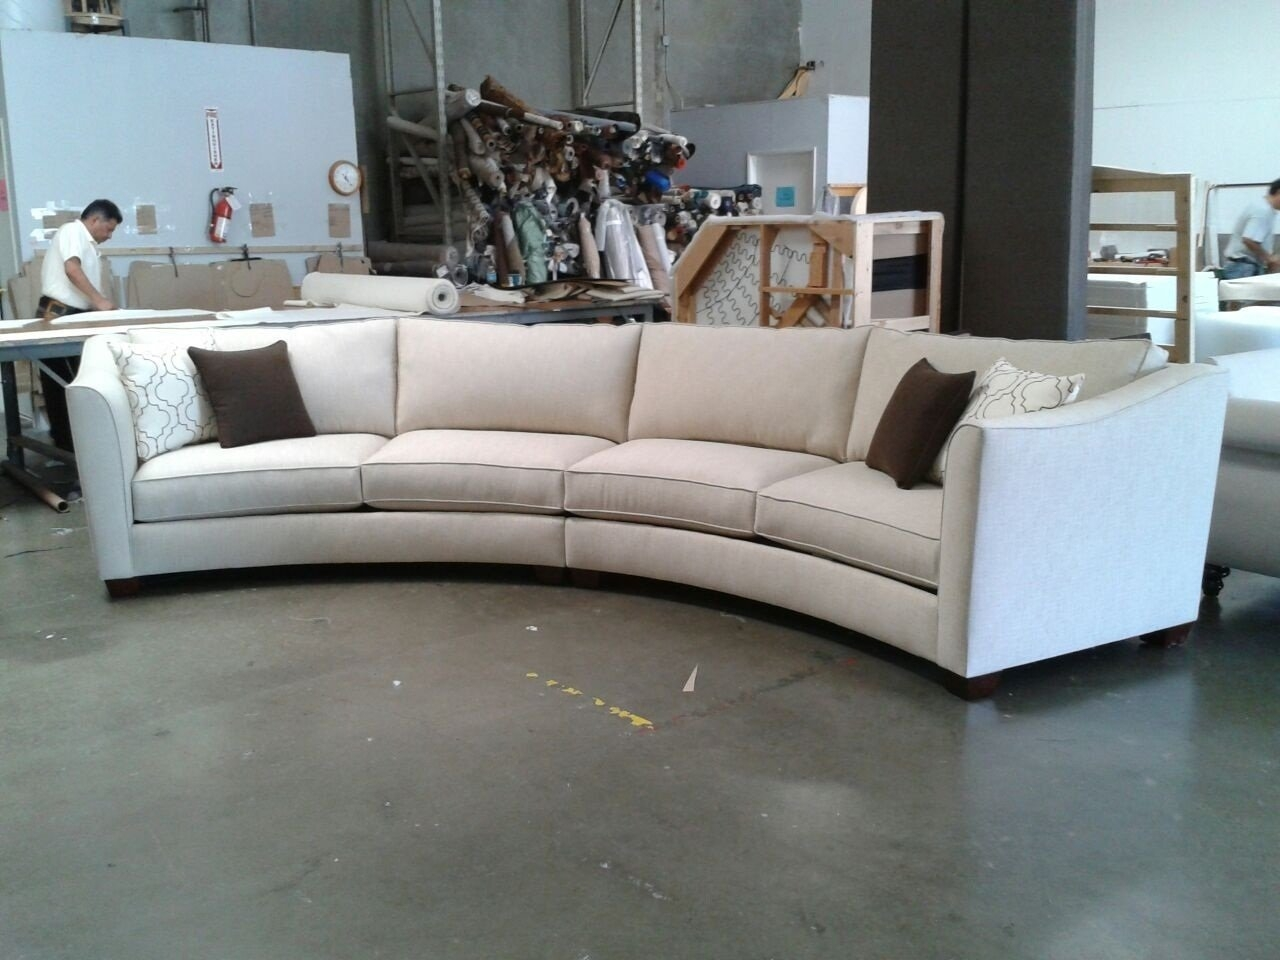 Curved Sectional Sofa Set Rich Comfortable Upholstered Fabric Regarding Contemporary Curved Sofas (View 10 of 15)